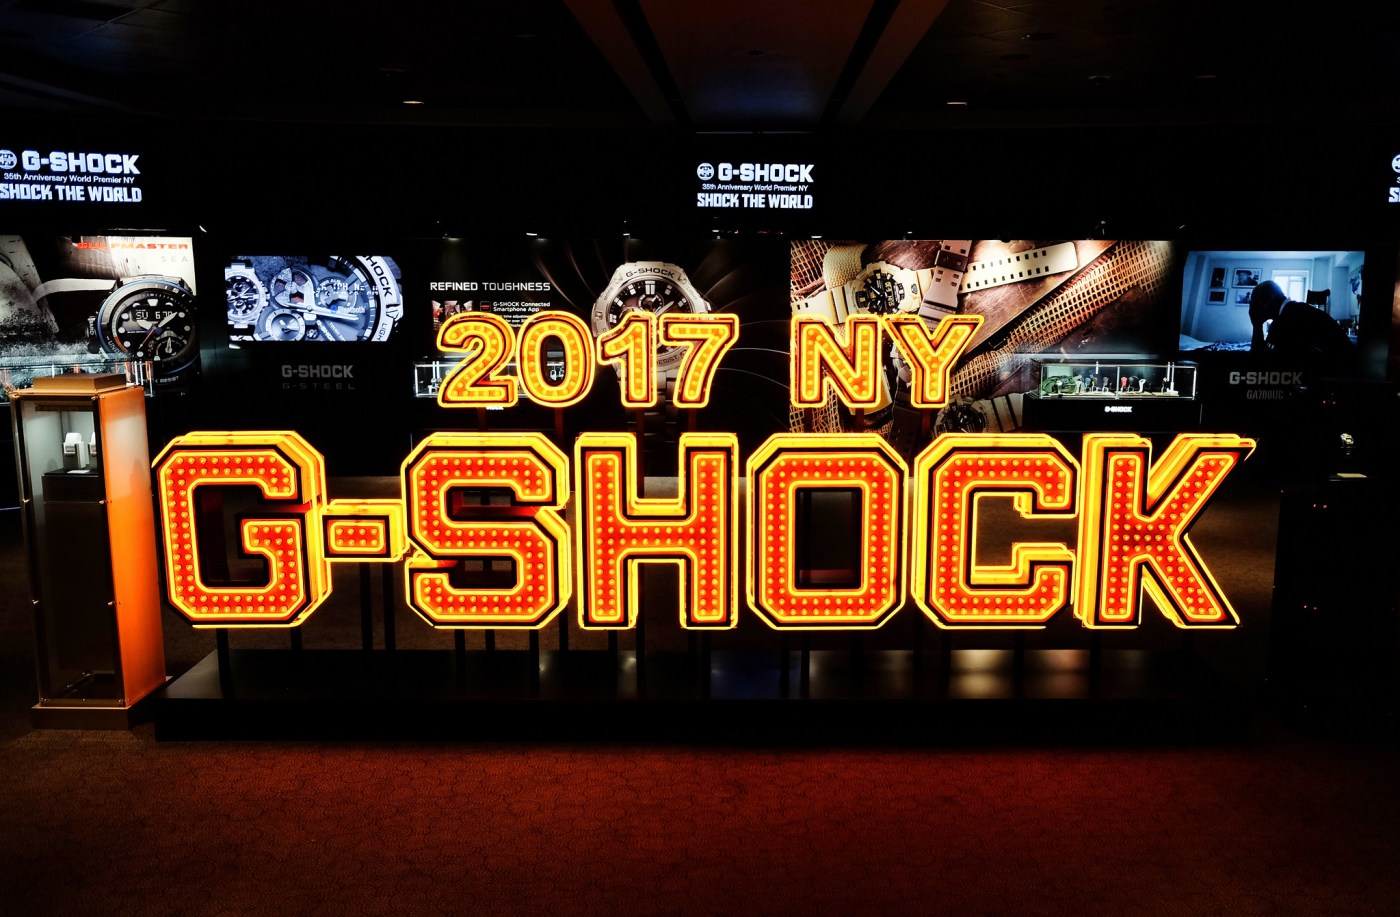 Massive G-Shock sign in the center of the exhibit